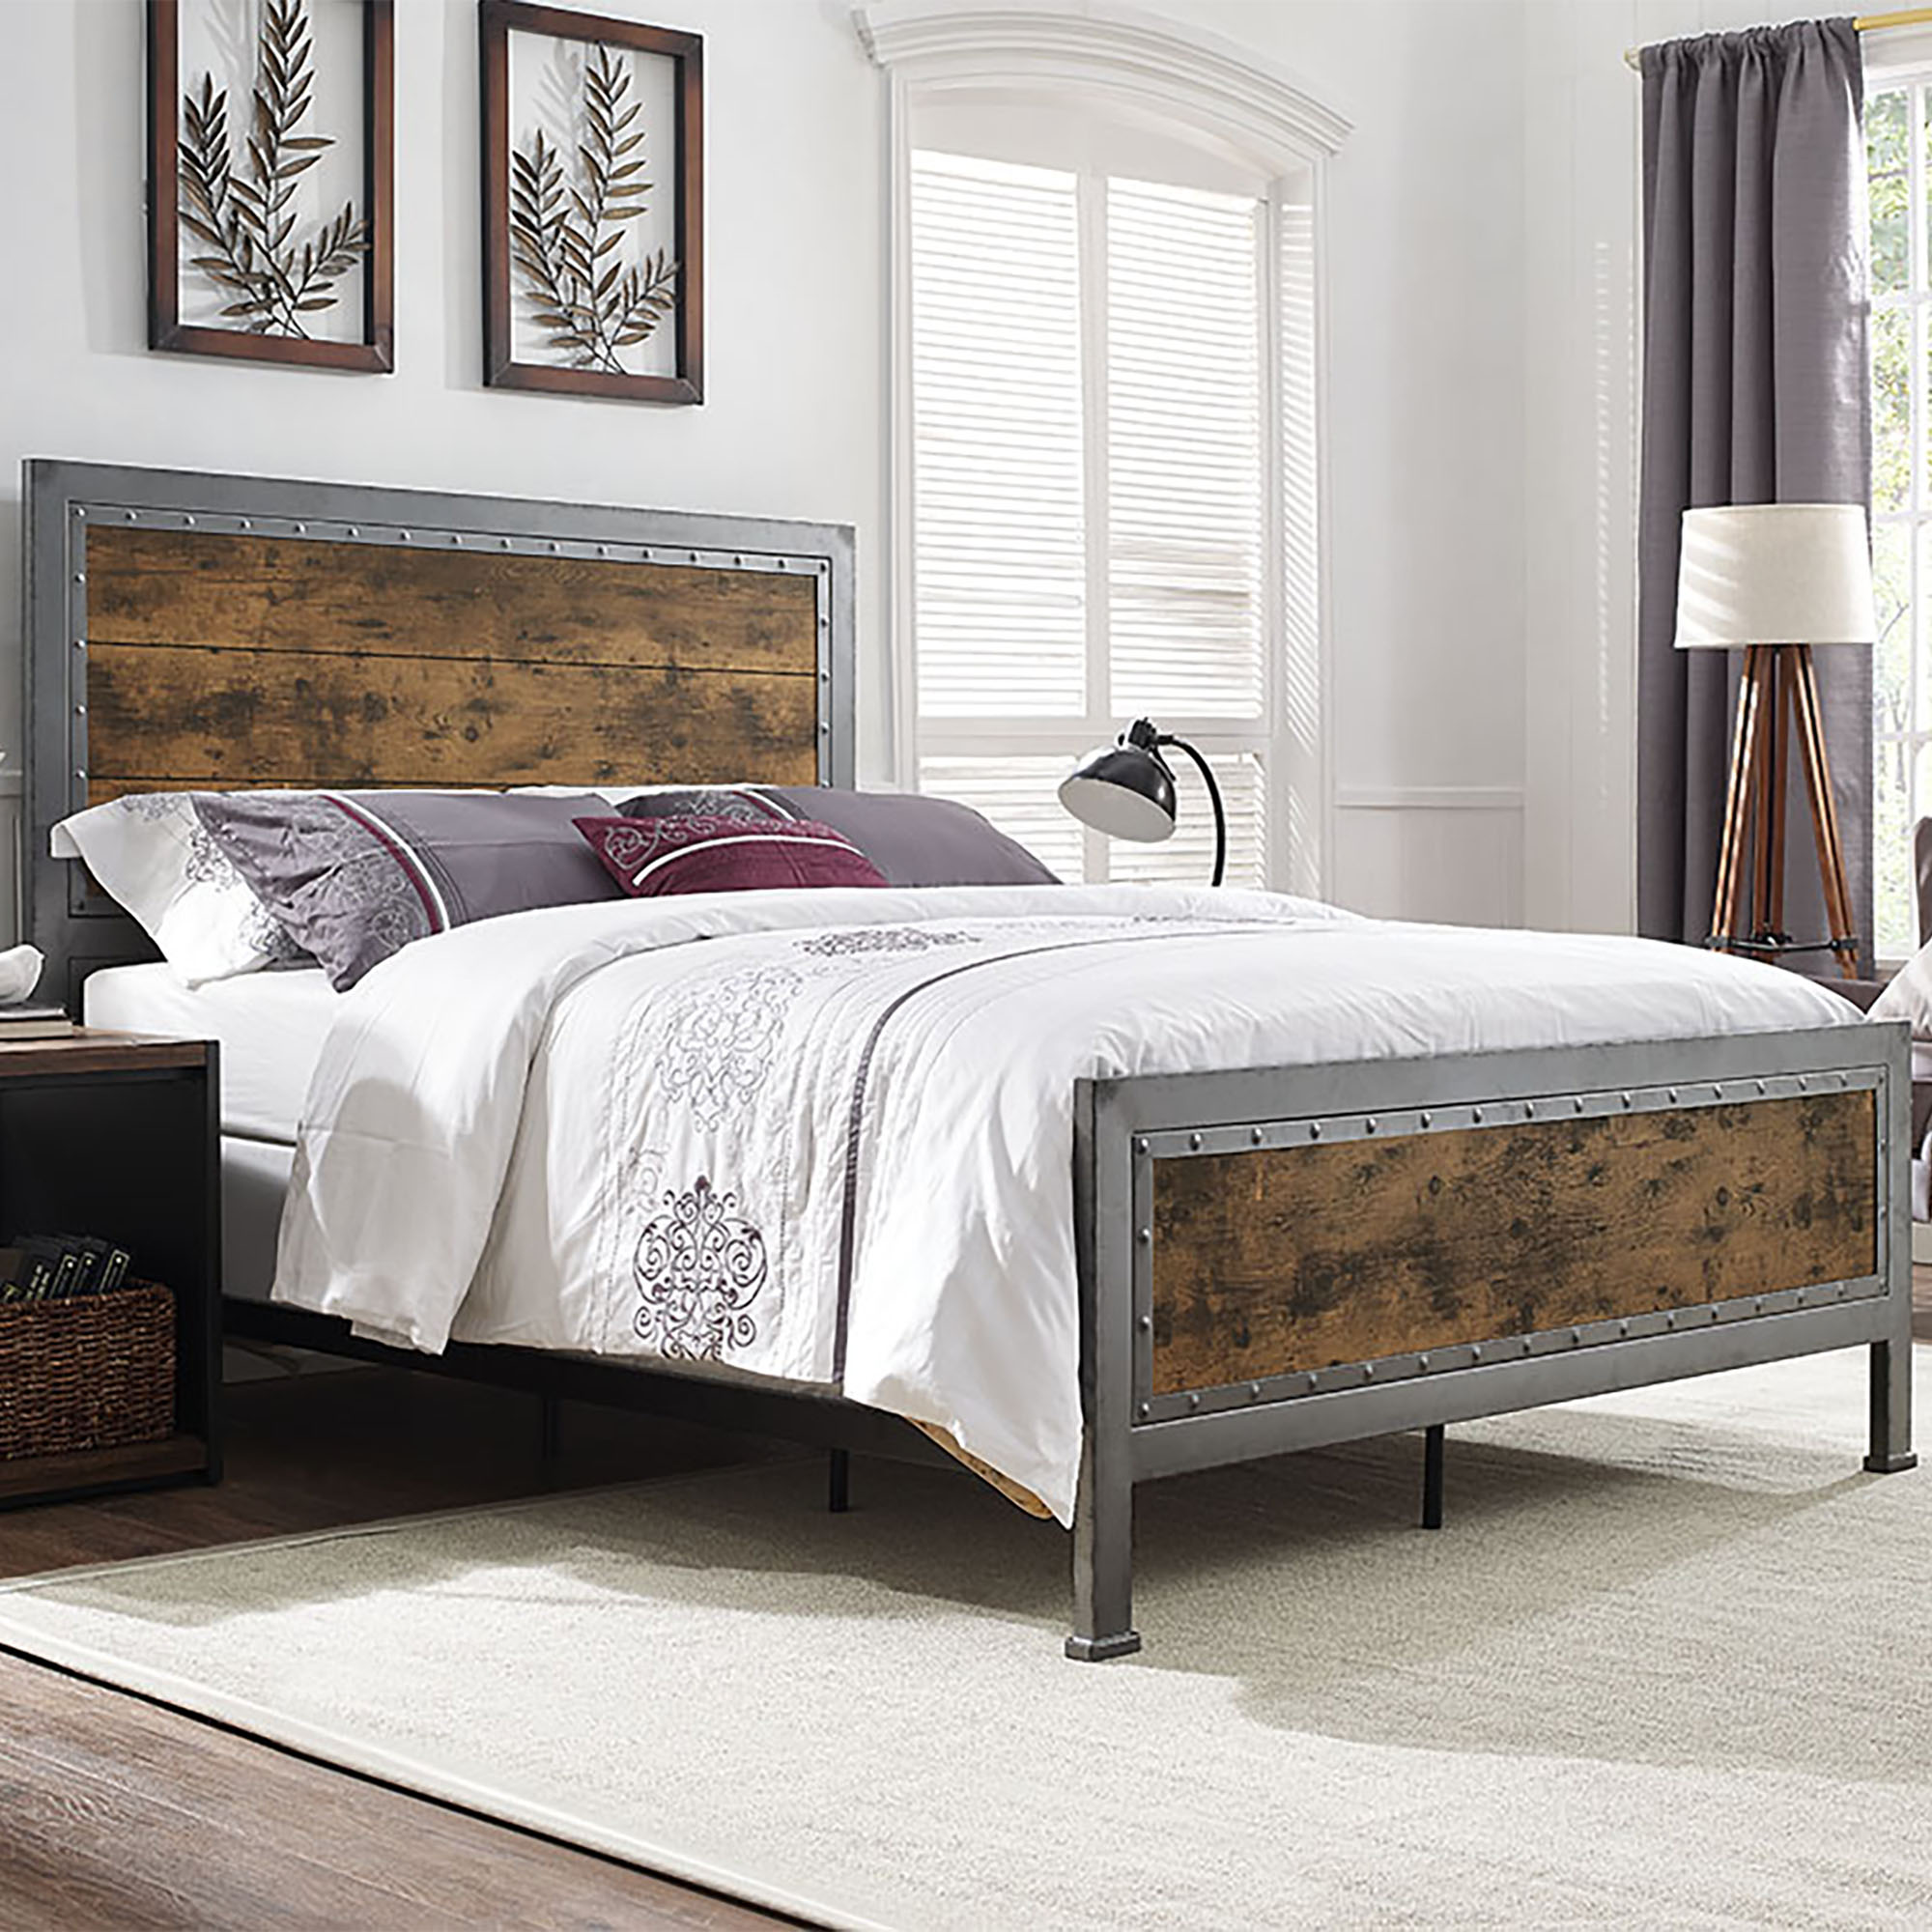 Manor Park Industrial Wood and Metal Queen Size Bed - Brown